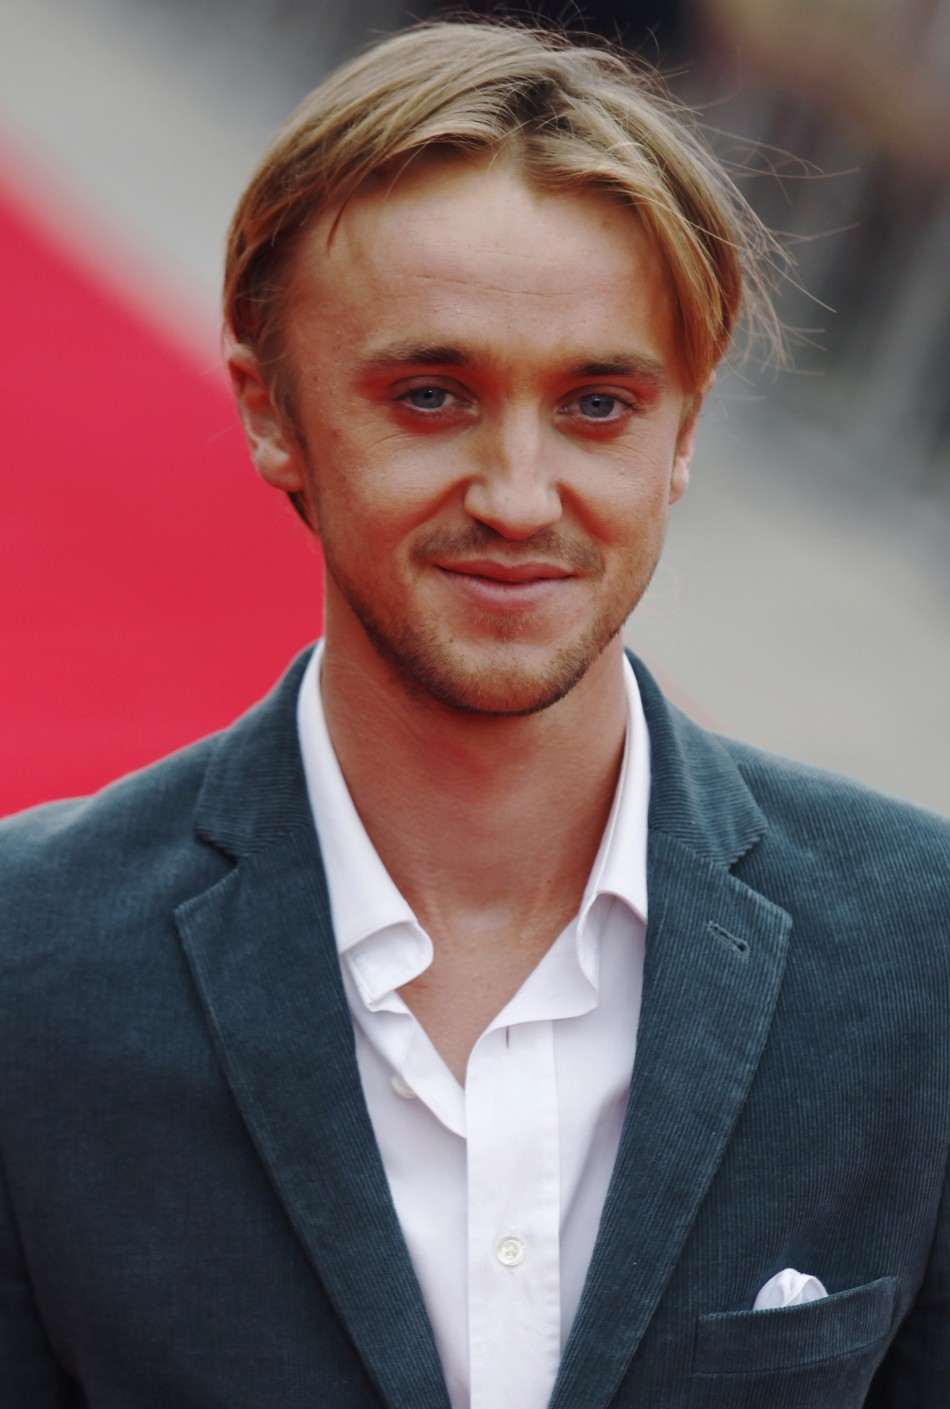 Actor Tom Felton poses at the opening of the Warner Brothers Studio Tour- The Making of Harry Potter near Watford north London